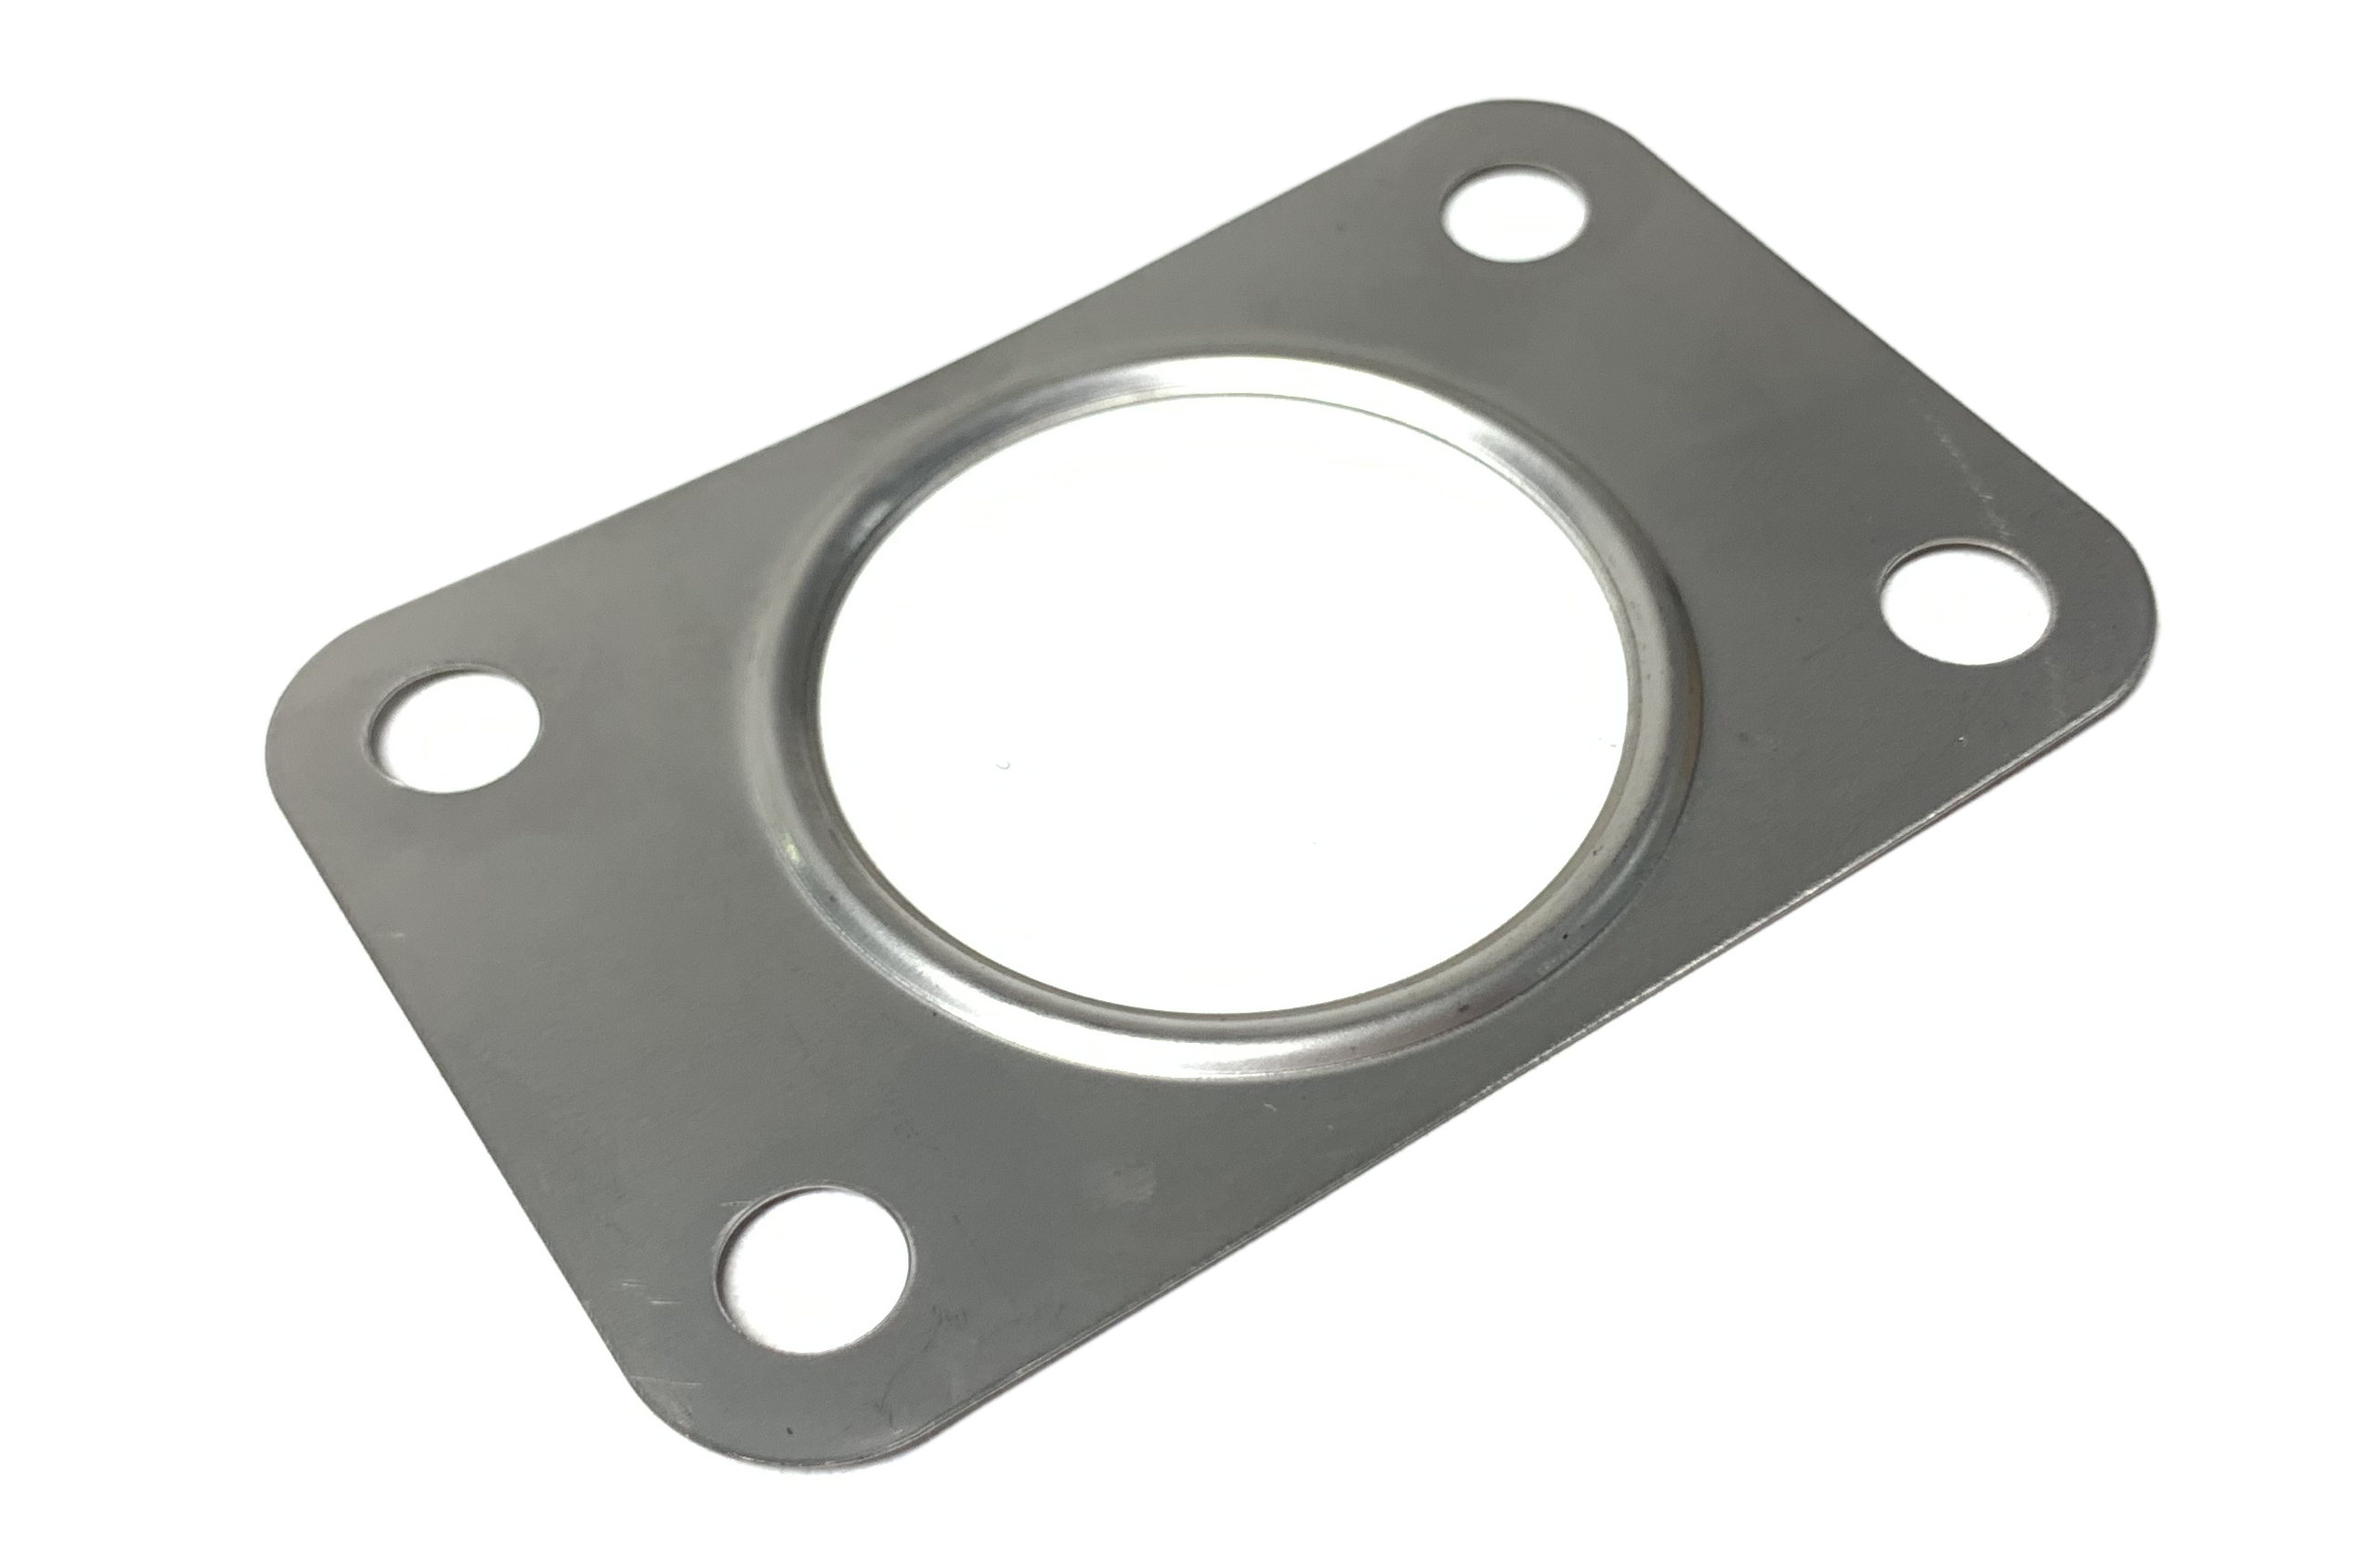 Saab Turbo Exhaust Gasket NEW 9113937